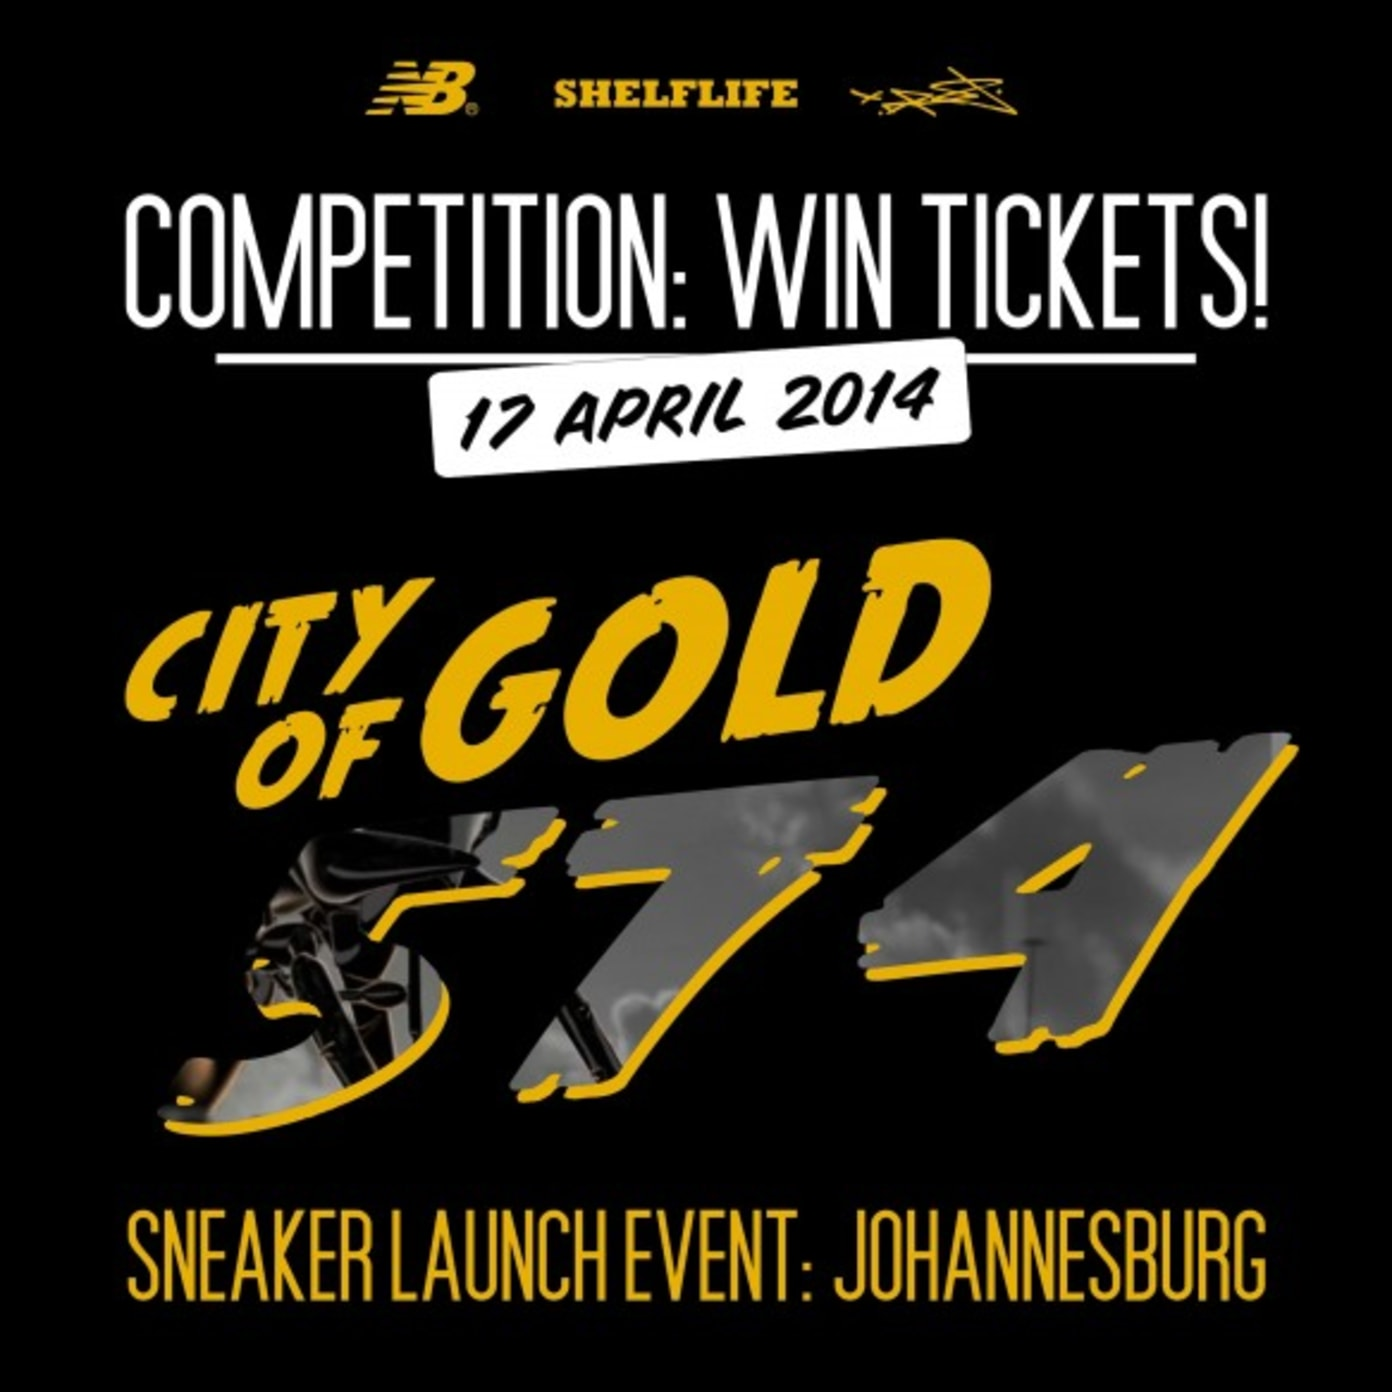 NB City of Gold - Johannesburg Launch Event